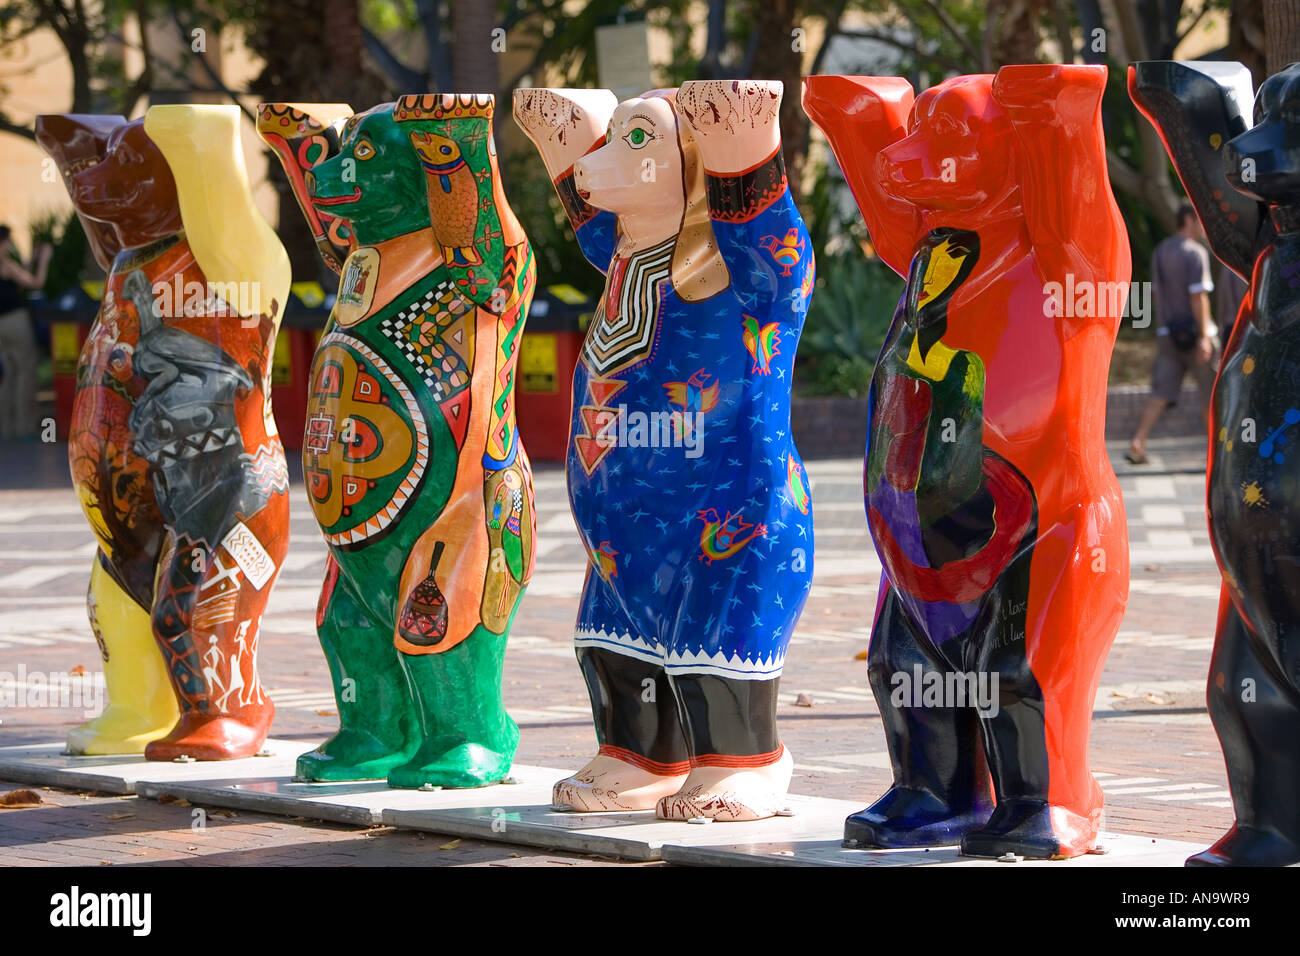 Unicef charity fundraising United Buddy Bears on display in Sydney New South Wales Australia Stock Photo